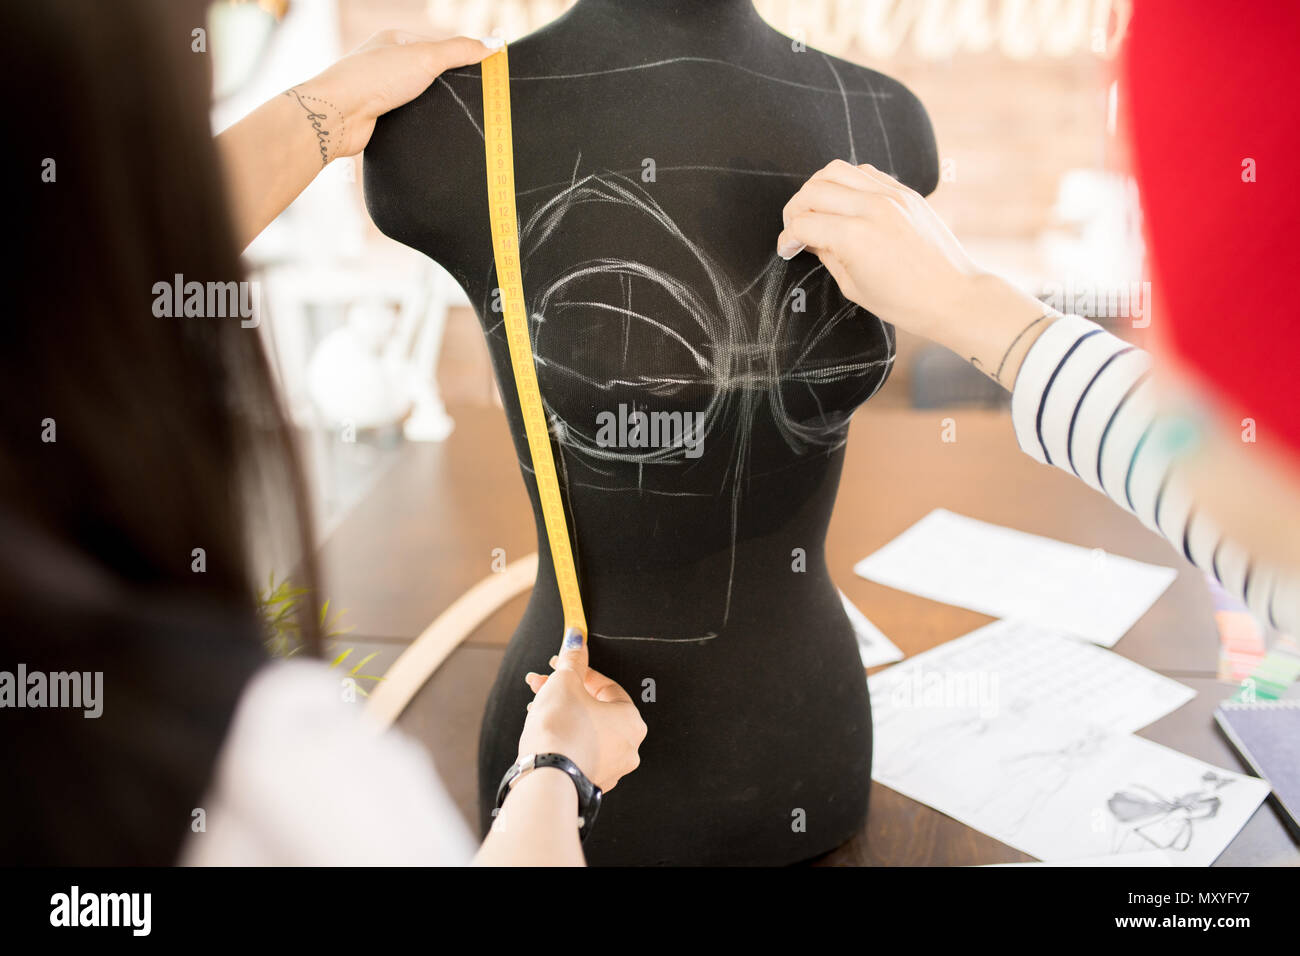 Dummy Two Stockfotos & Dummy Two Bilder - Seite 2 - Alamy